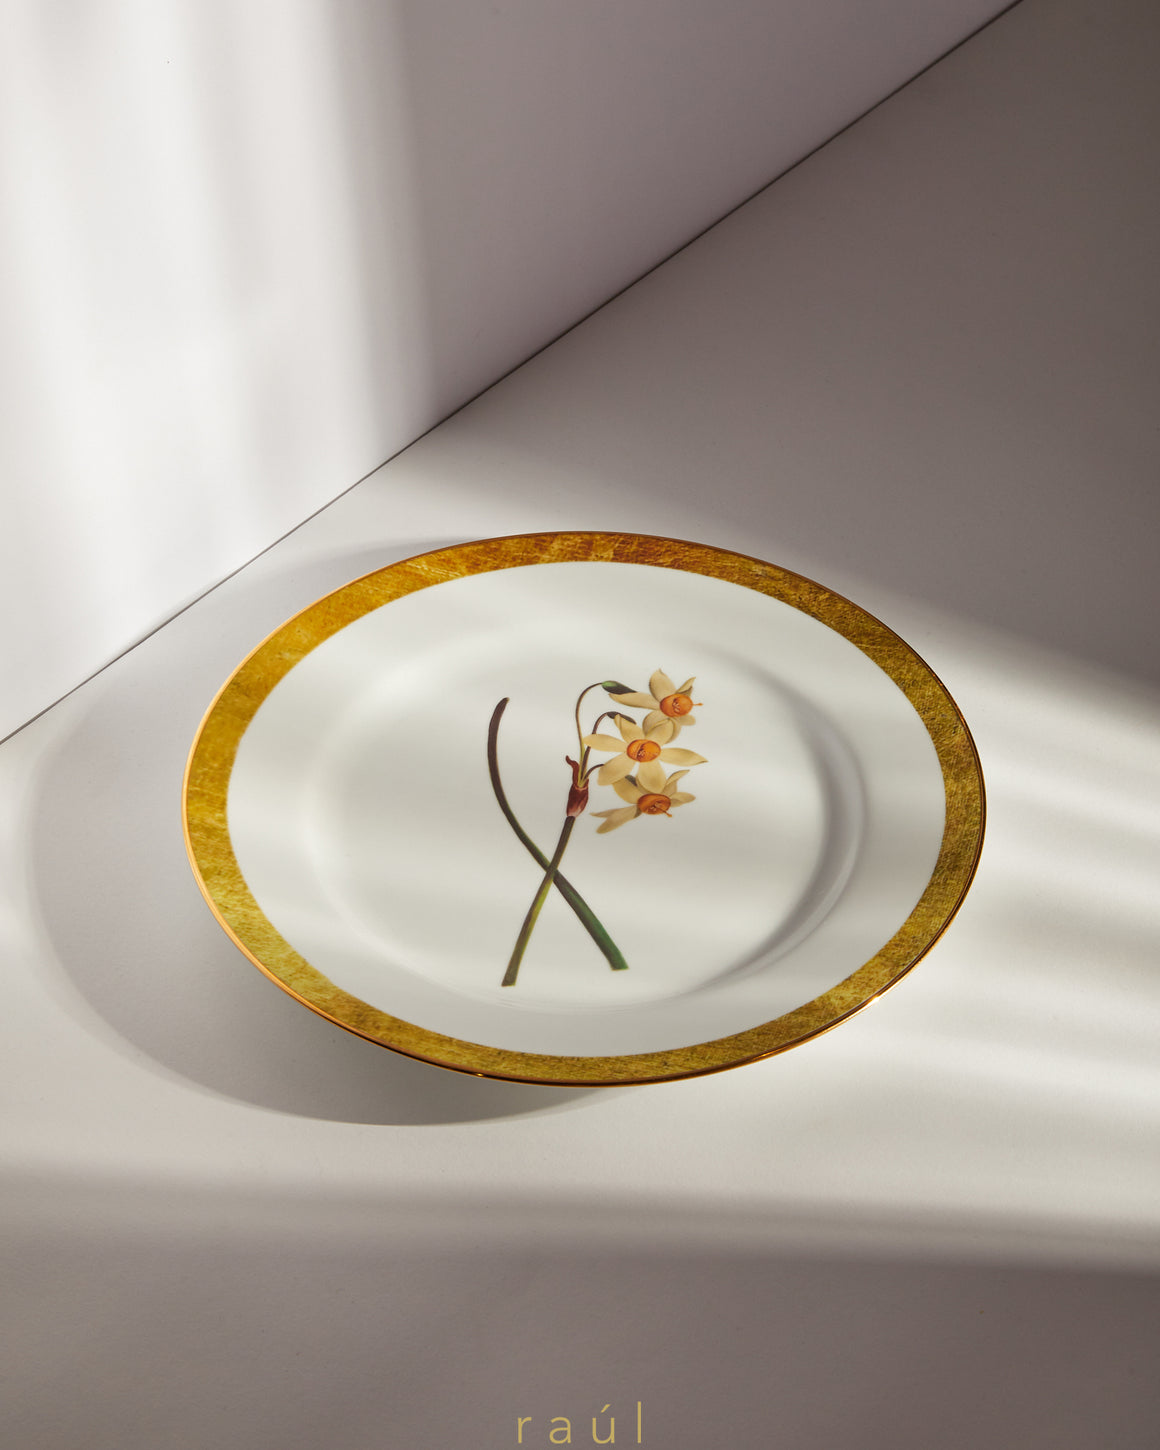 Poet's Narcissus Decorative Plate